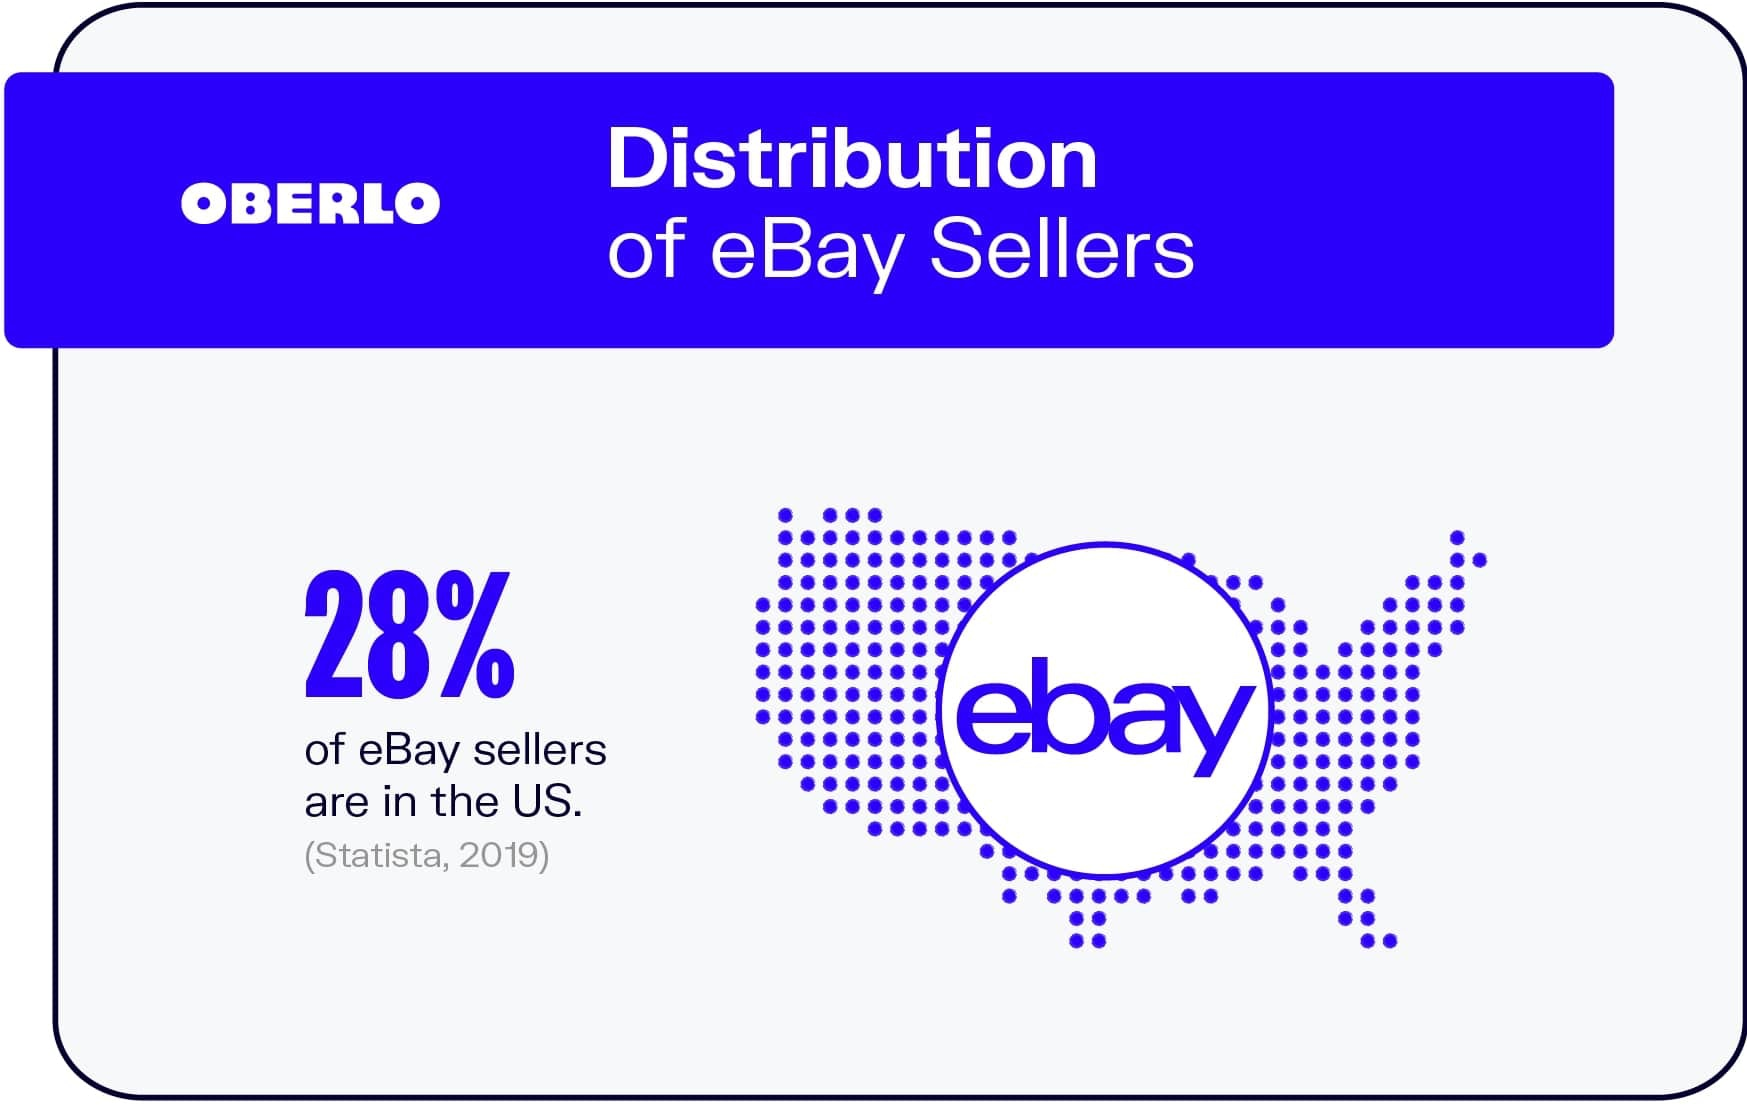 Distribution of eBay Sellers